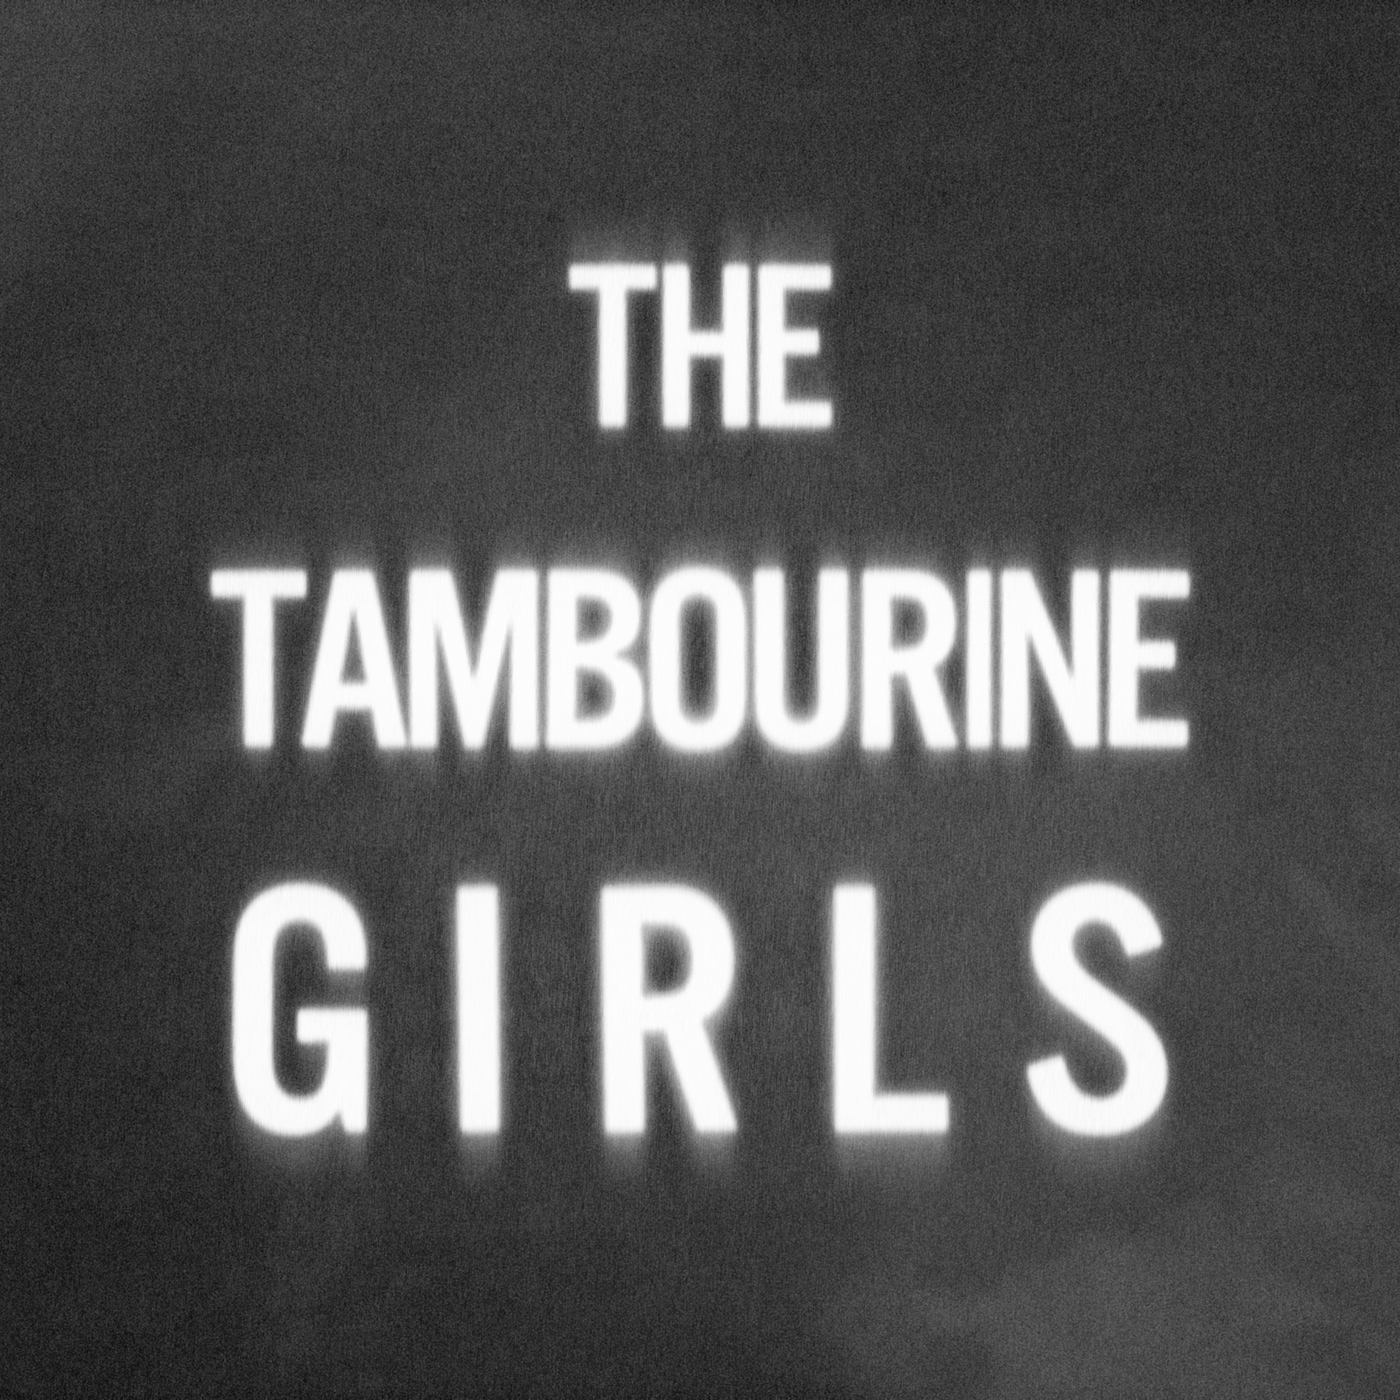 The Tambourine Girls  (2016)  Vinyl / CD / Digital